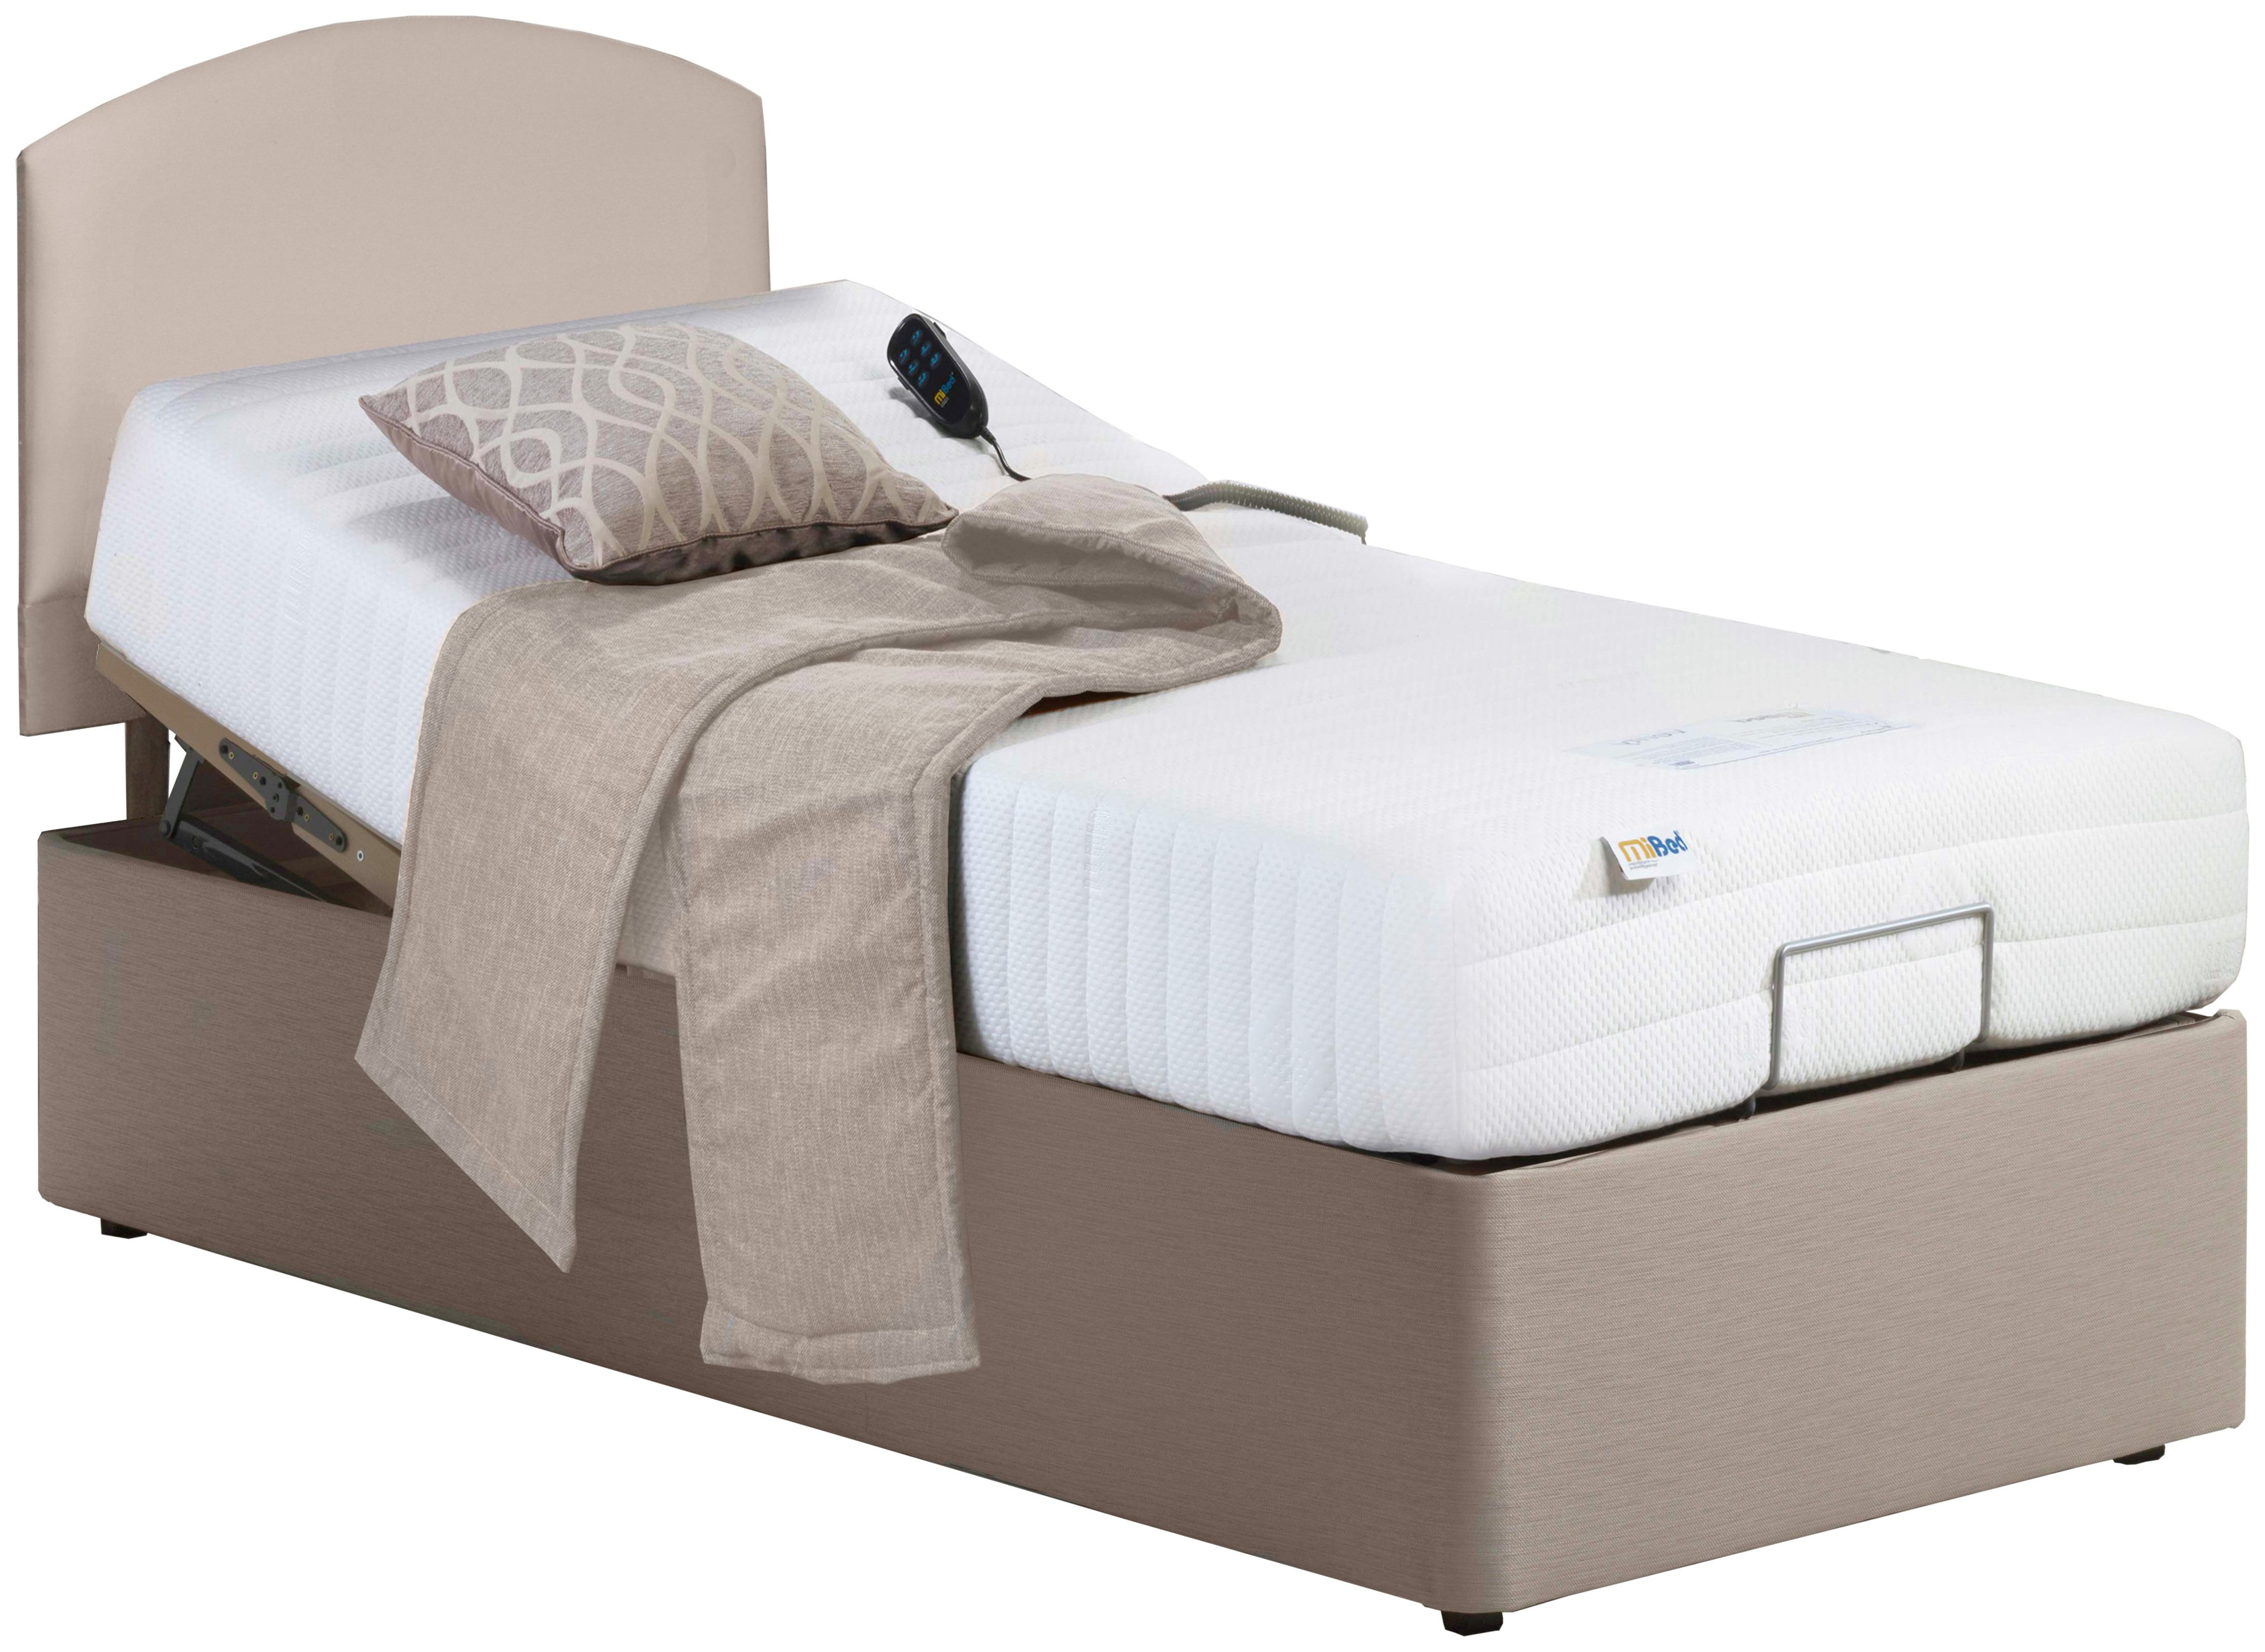 MiBed Adjustable 3'0 Lerwick Single Bed